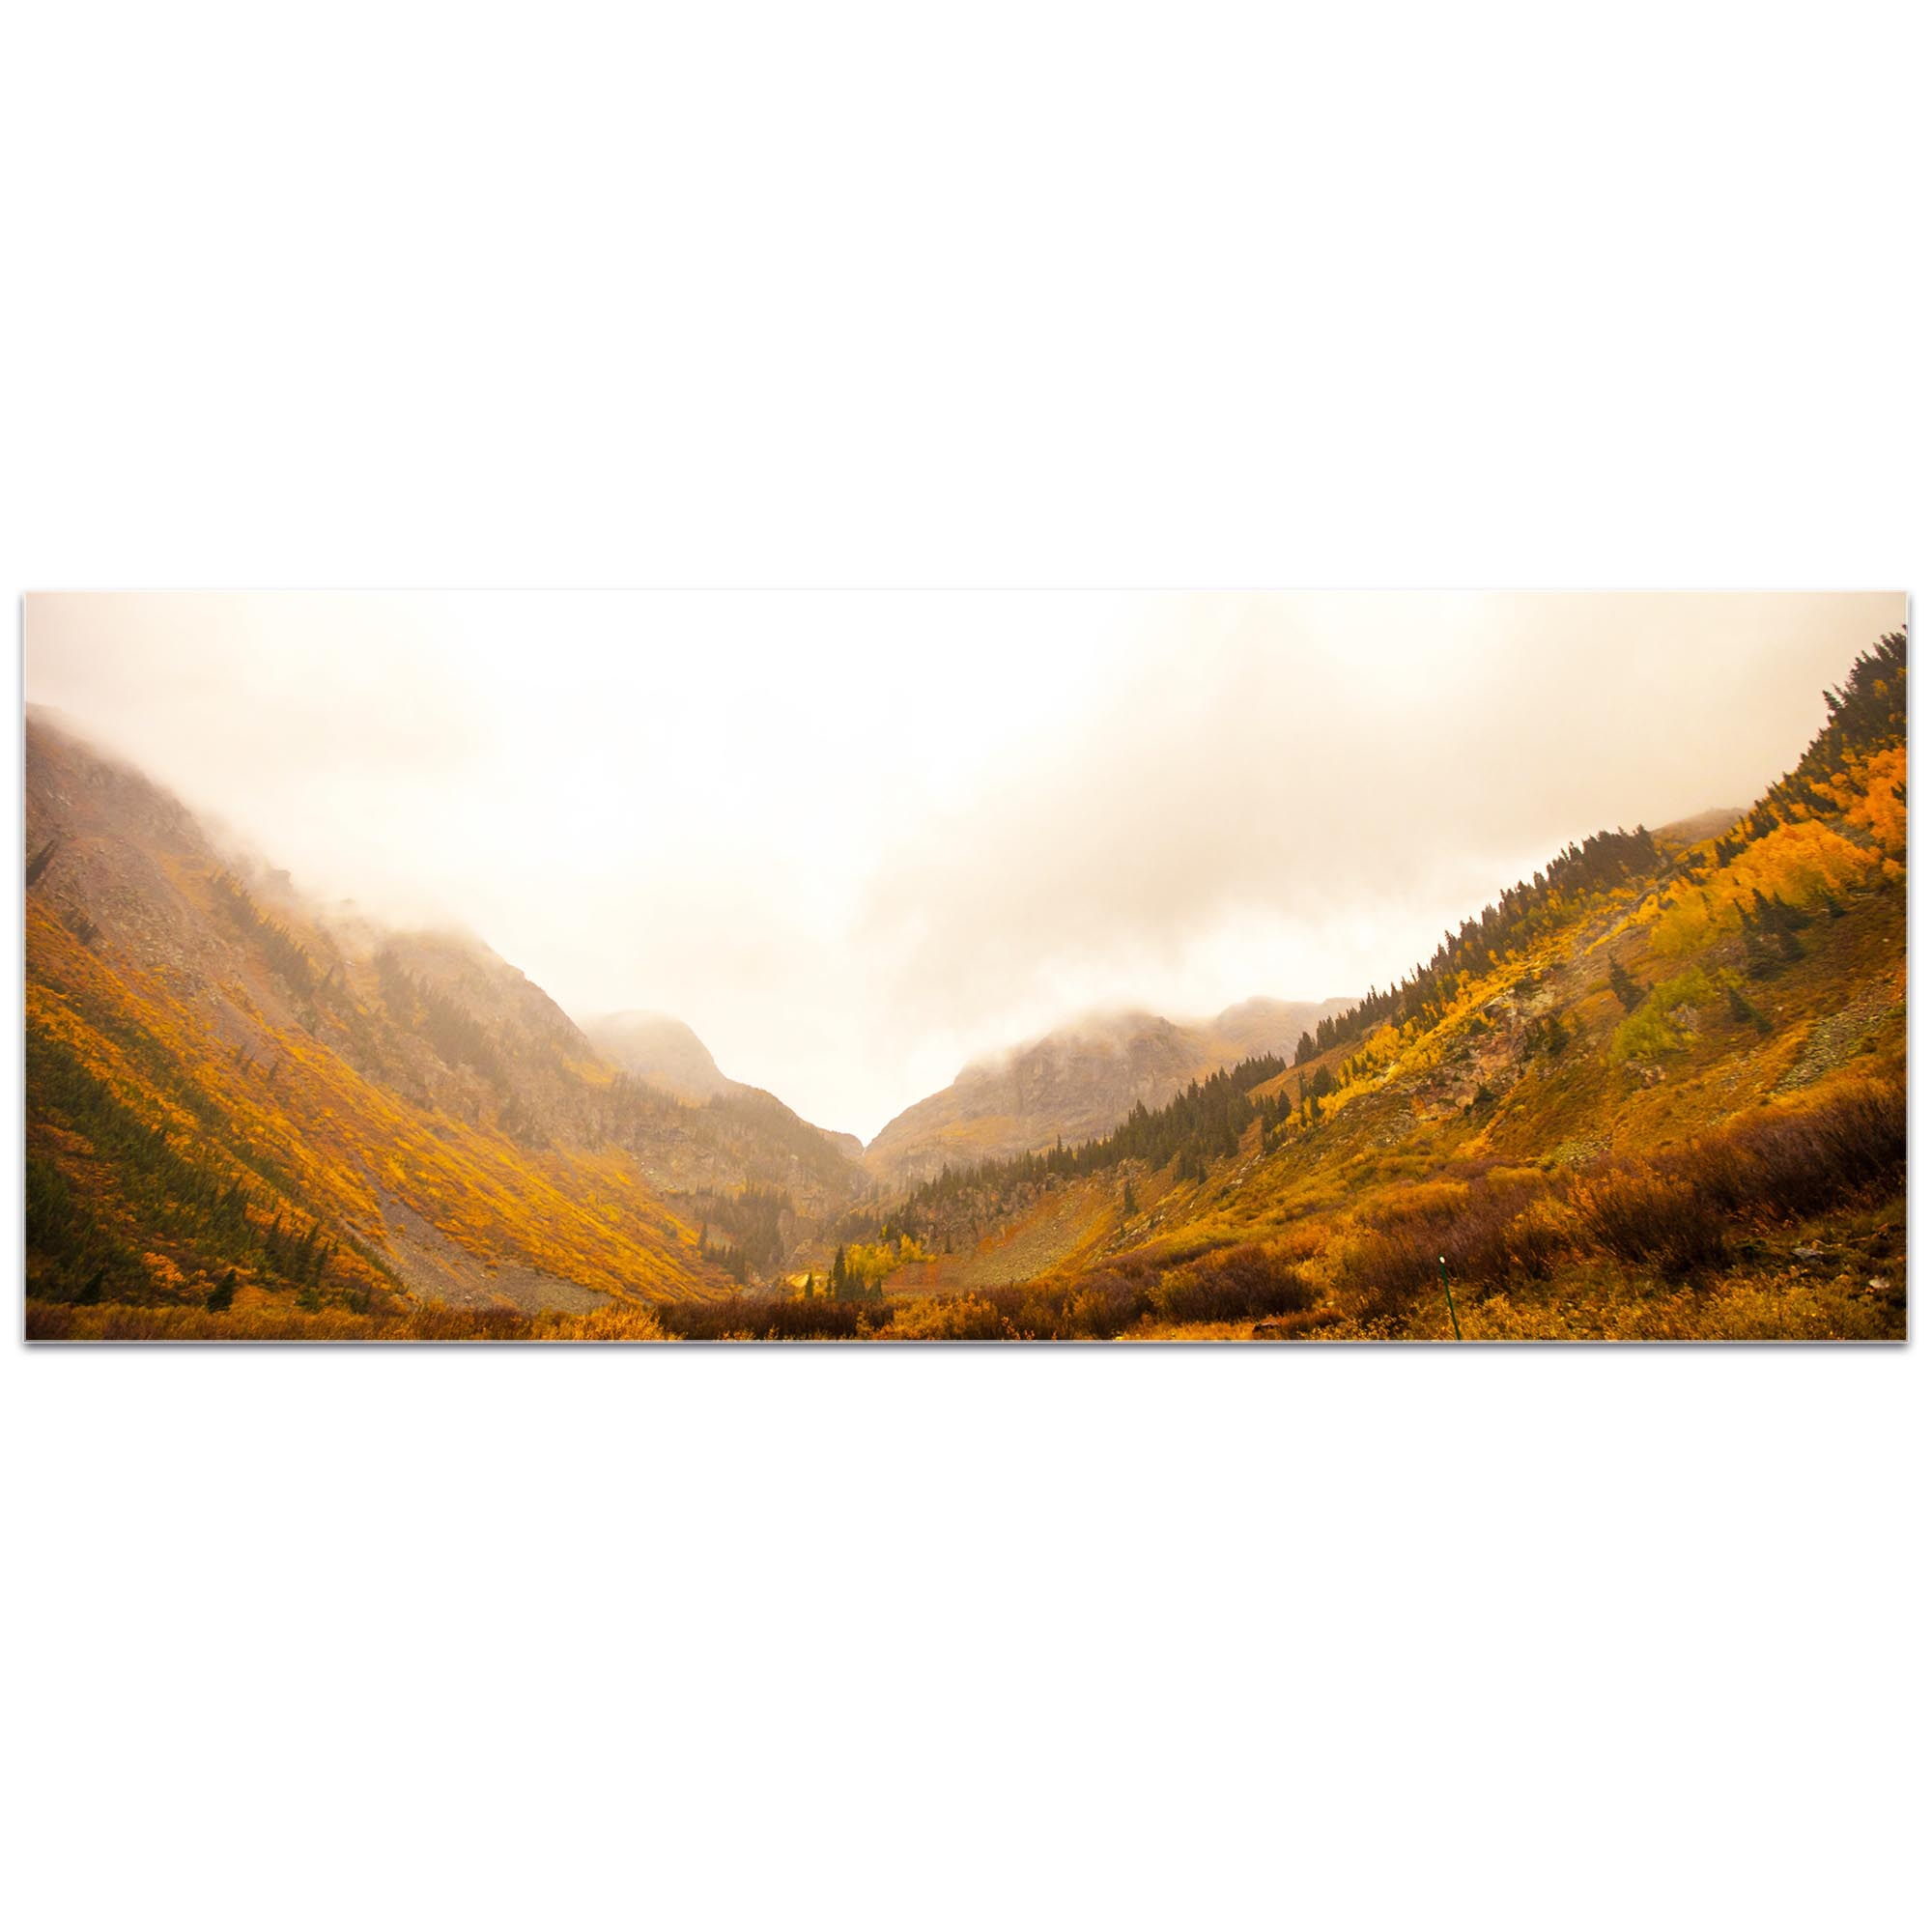 Landscape Photography 'Fog in the Canyon' - Autumn Nature Art on Metal or Plexiglass - Image 2